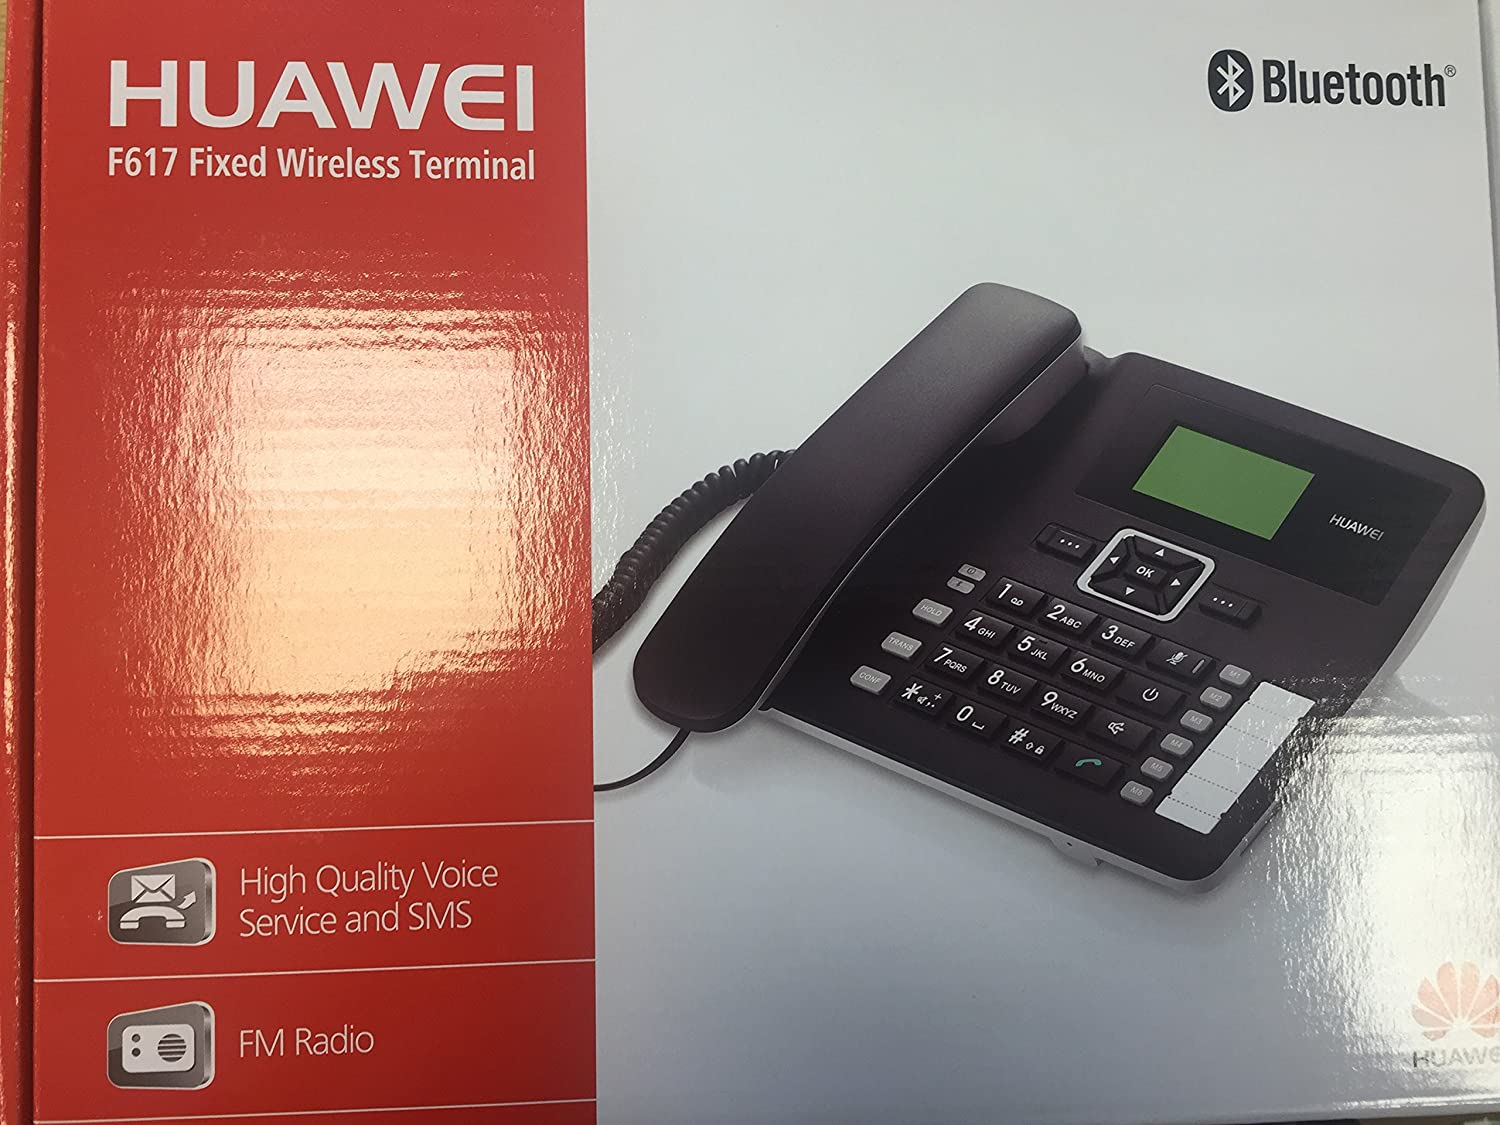 Telefono de escritorio con cable Huawei F617 0005: Amazon.es ...